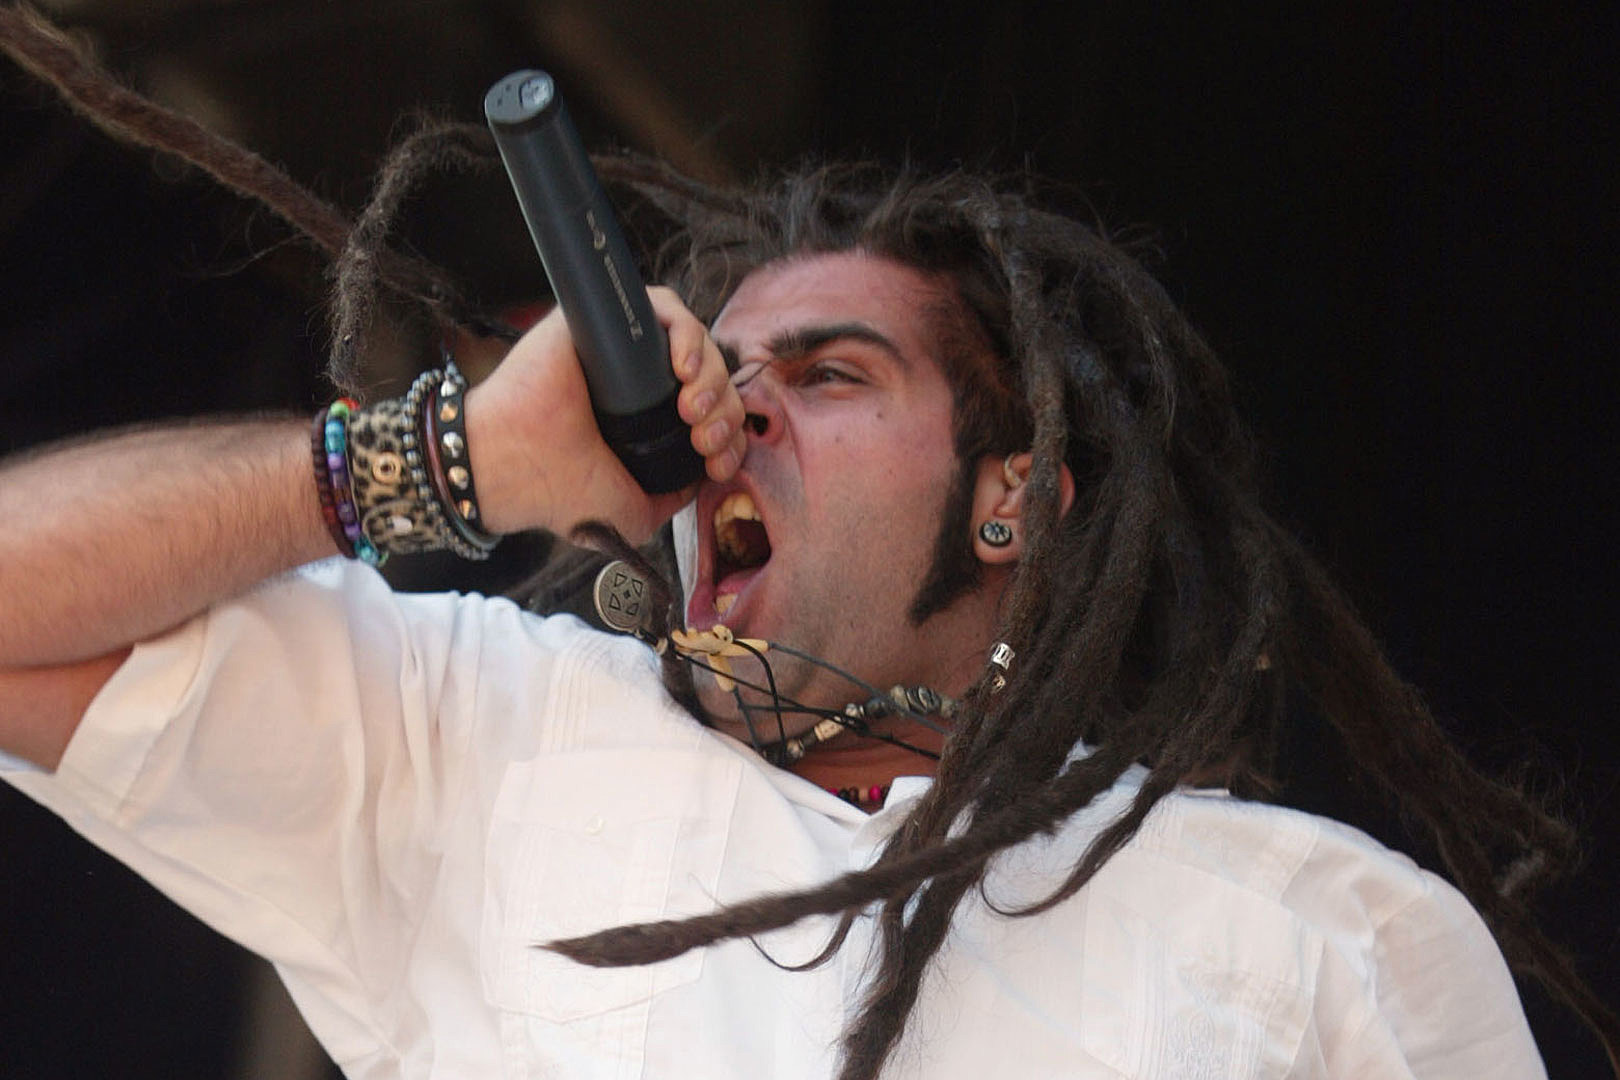 Report: Ill Nino Vocalist Cristian Machado Recently Arrested for Domestic Battery